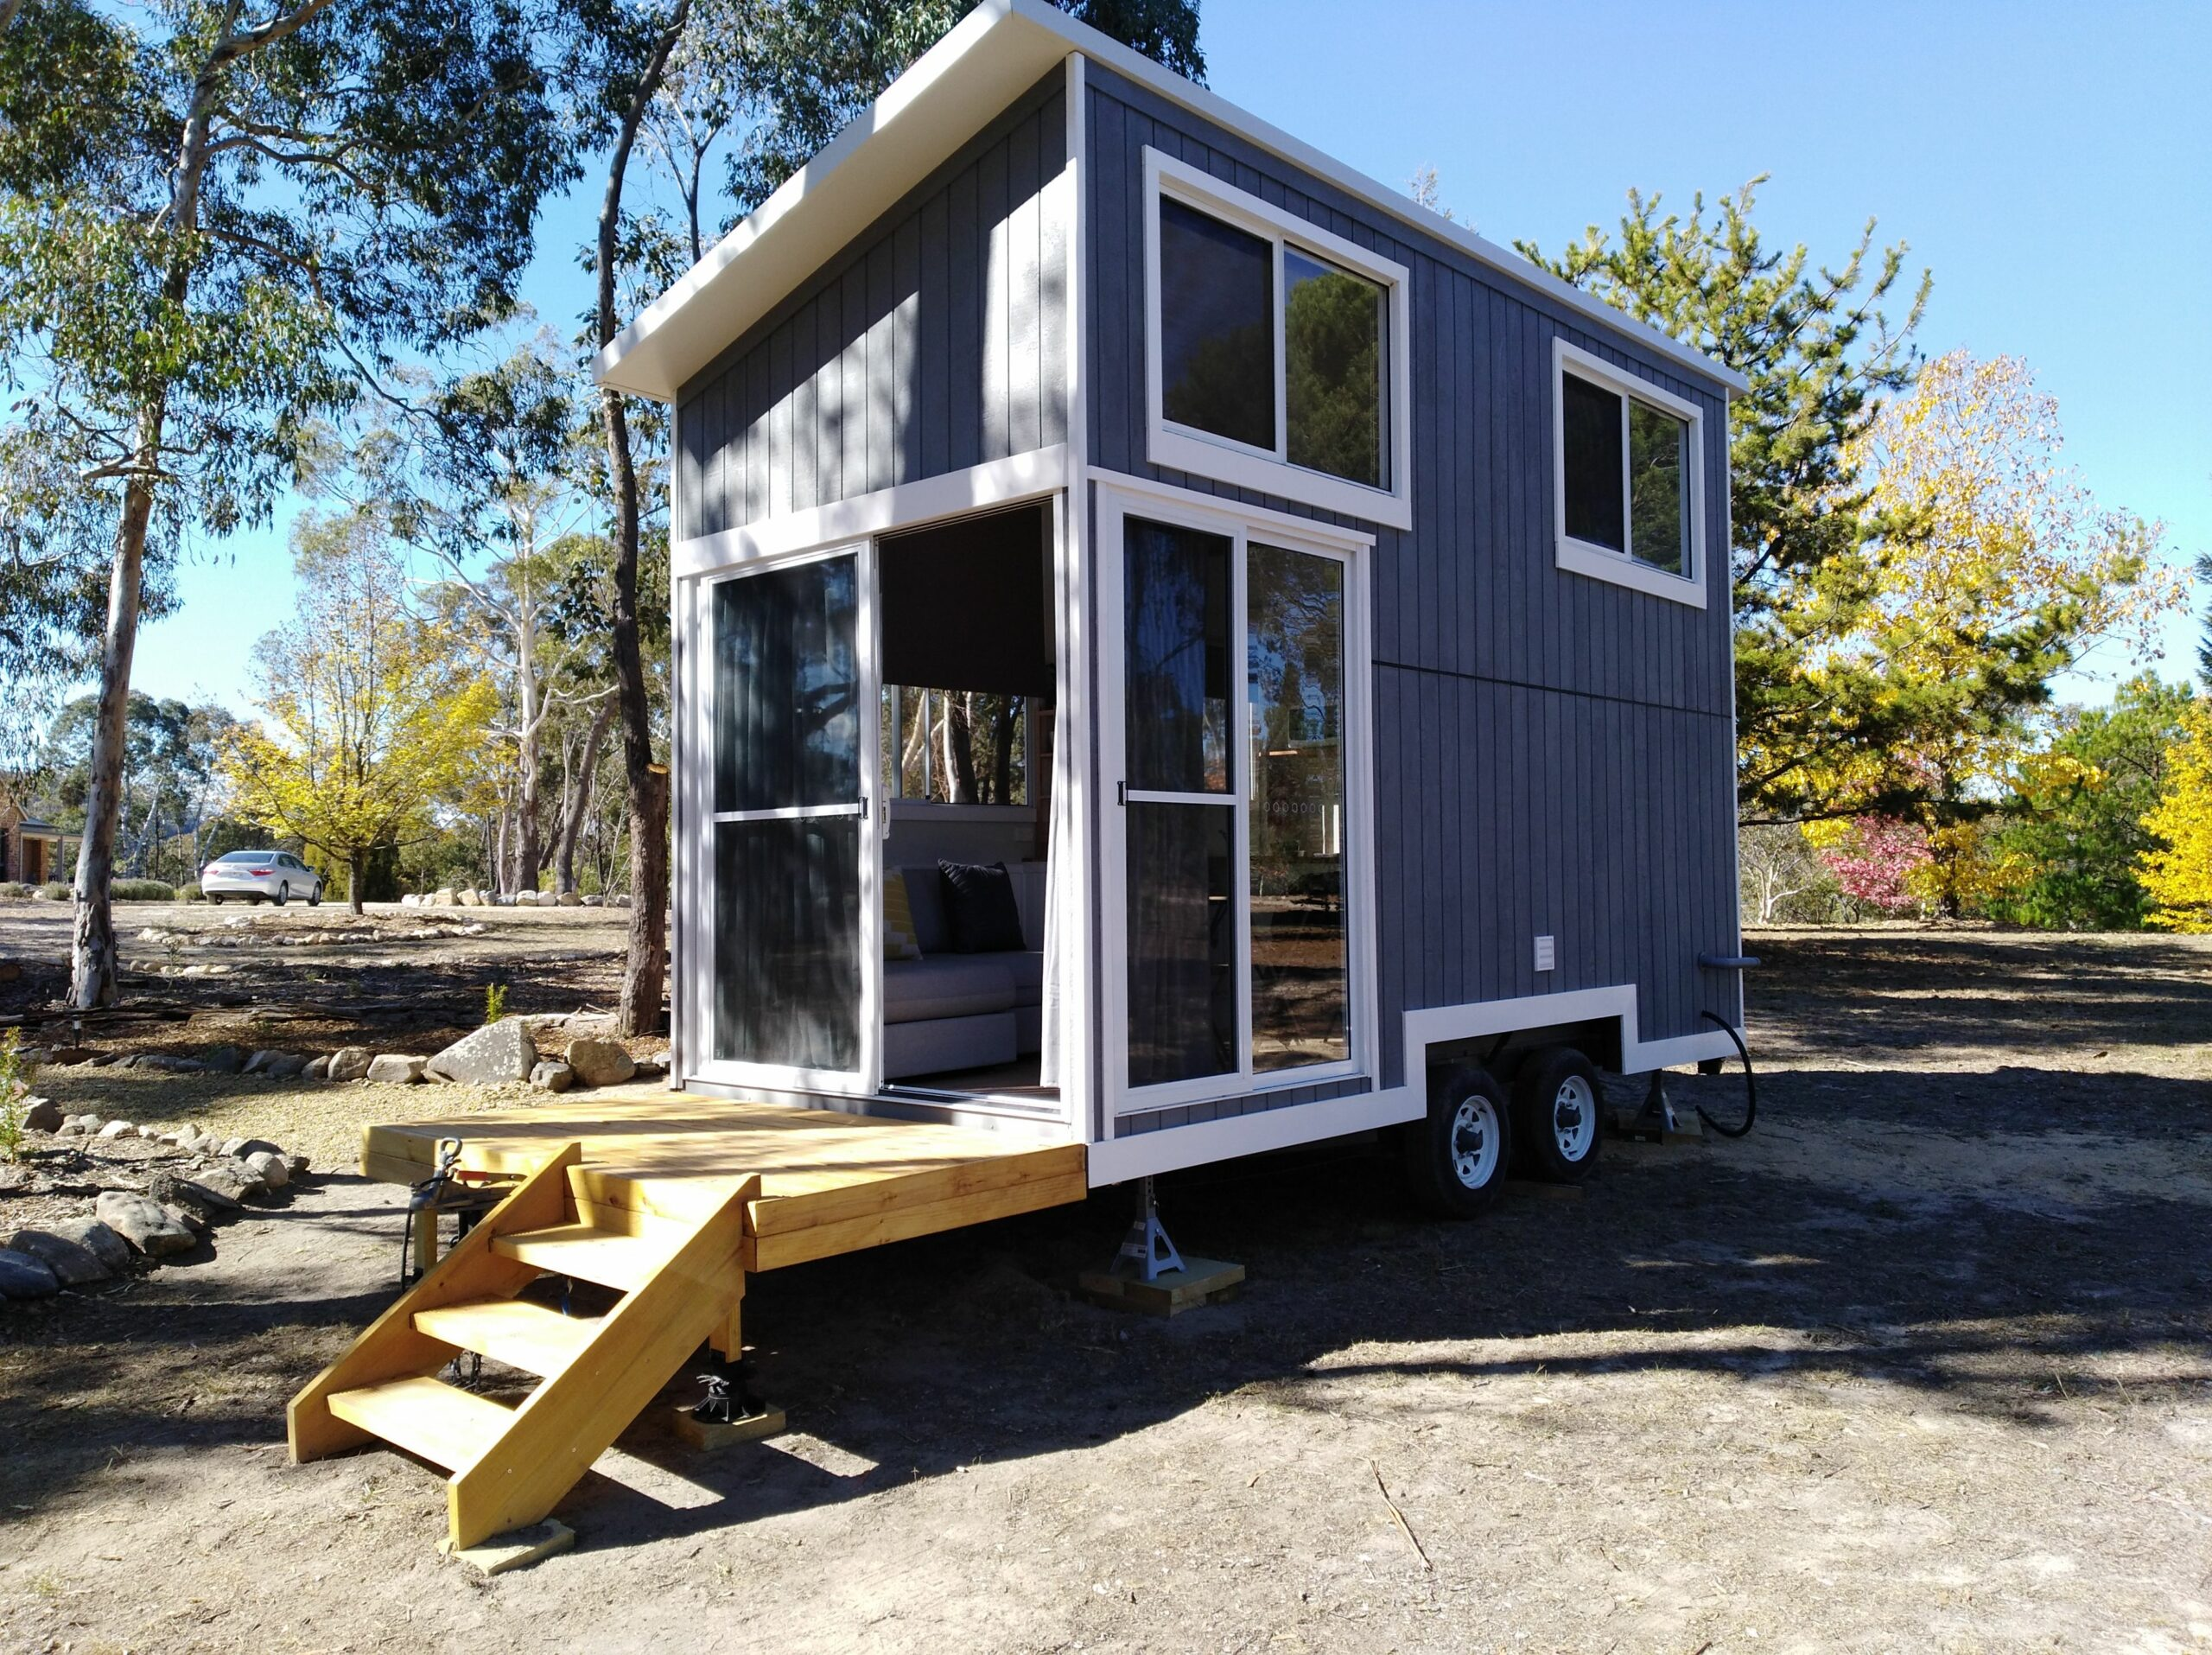 Whispers Tiny house for rental » Tiny Real Estate - tiny house adelaide